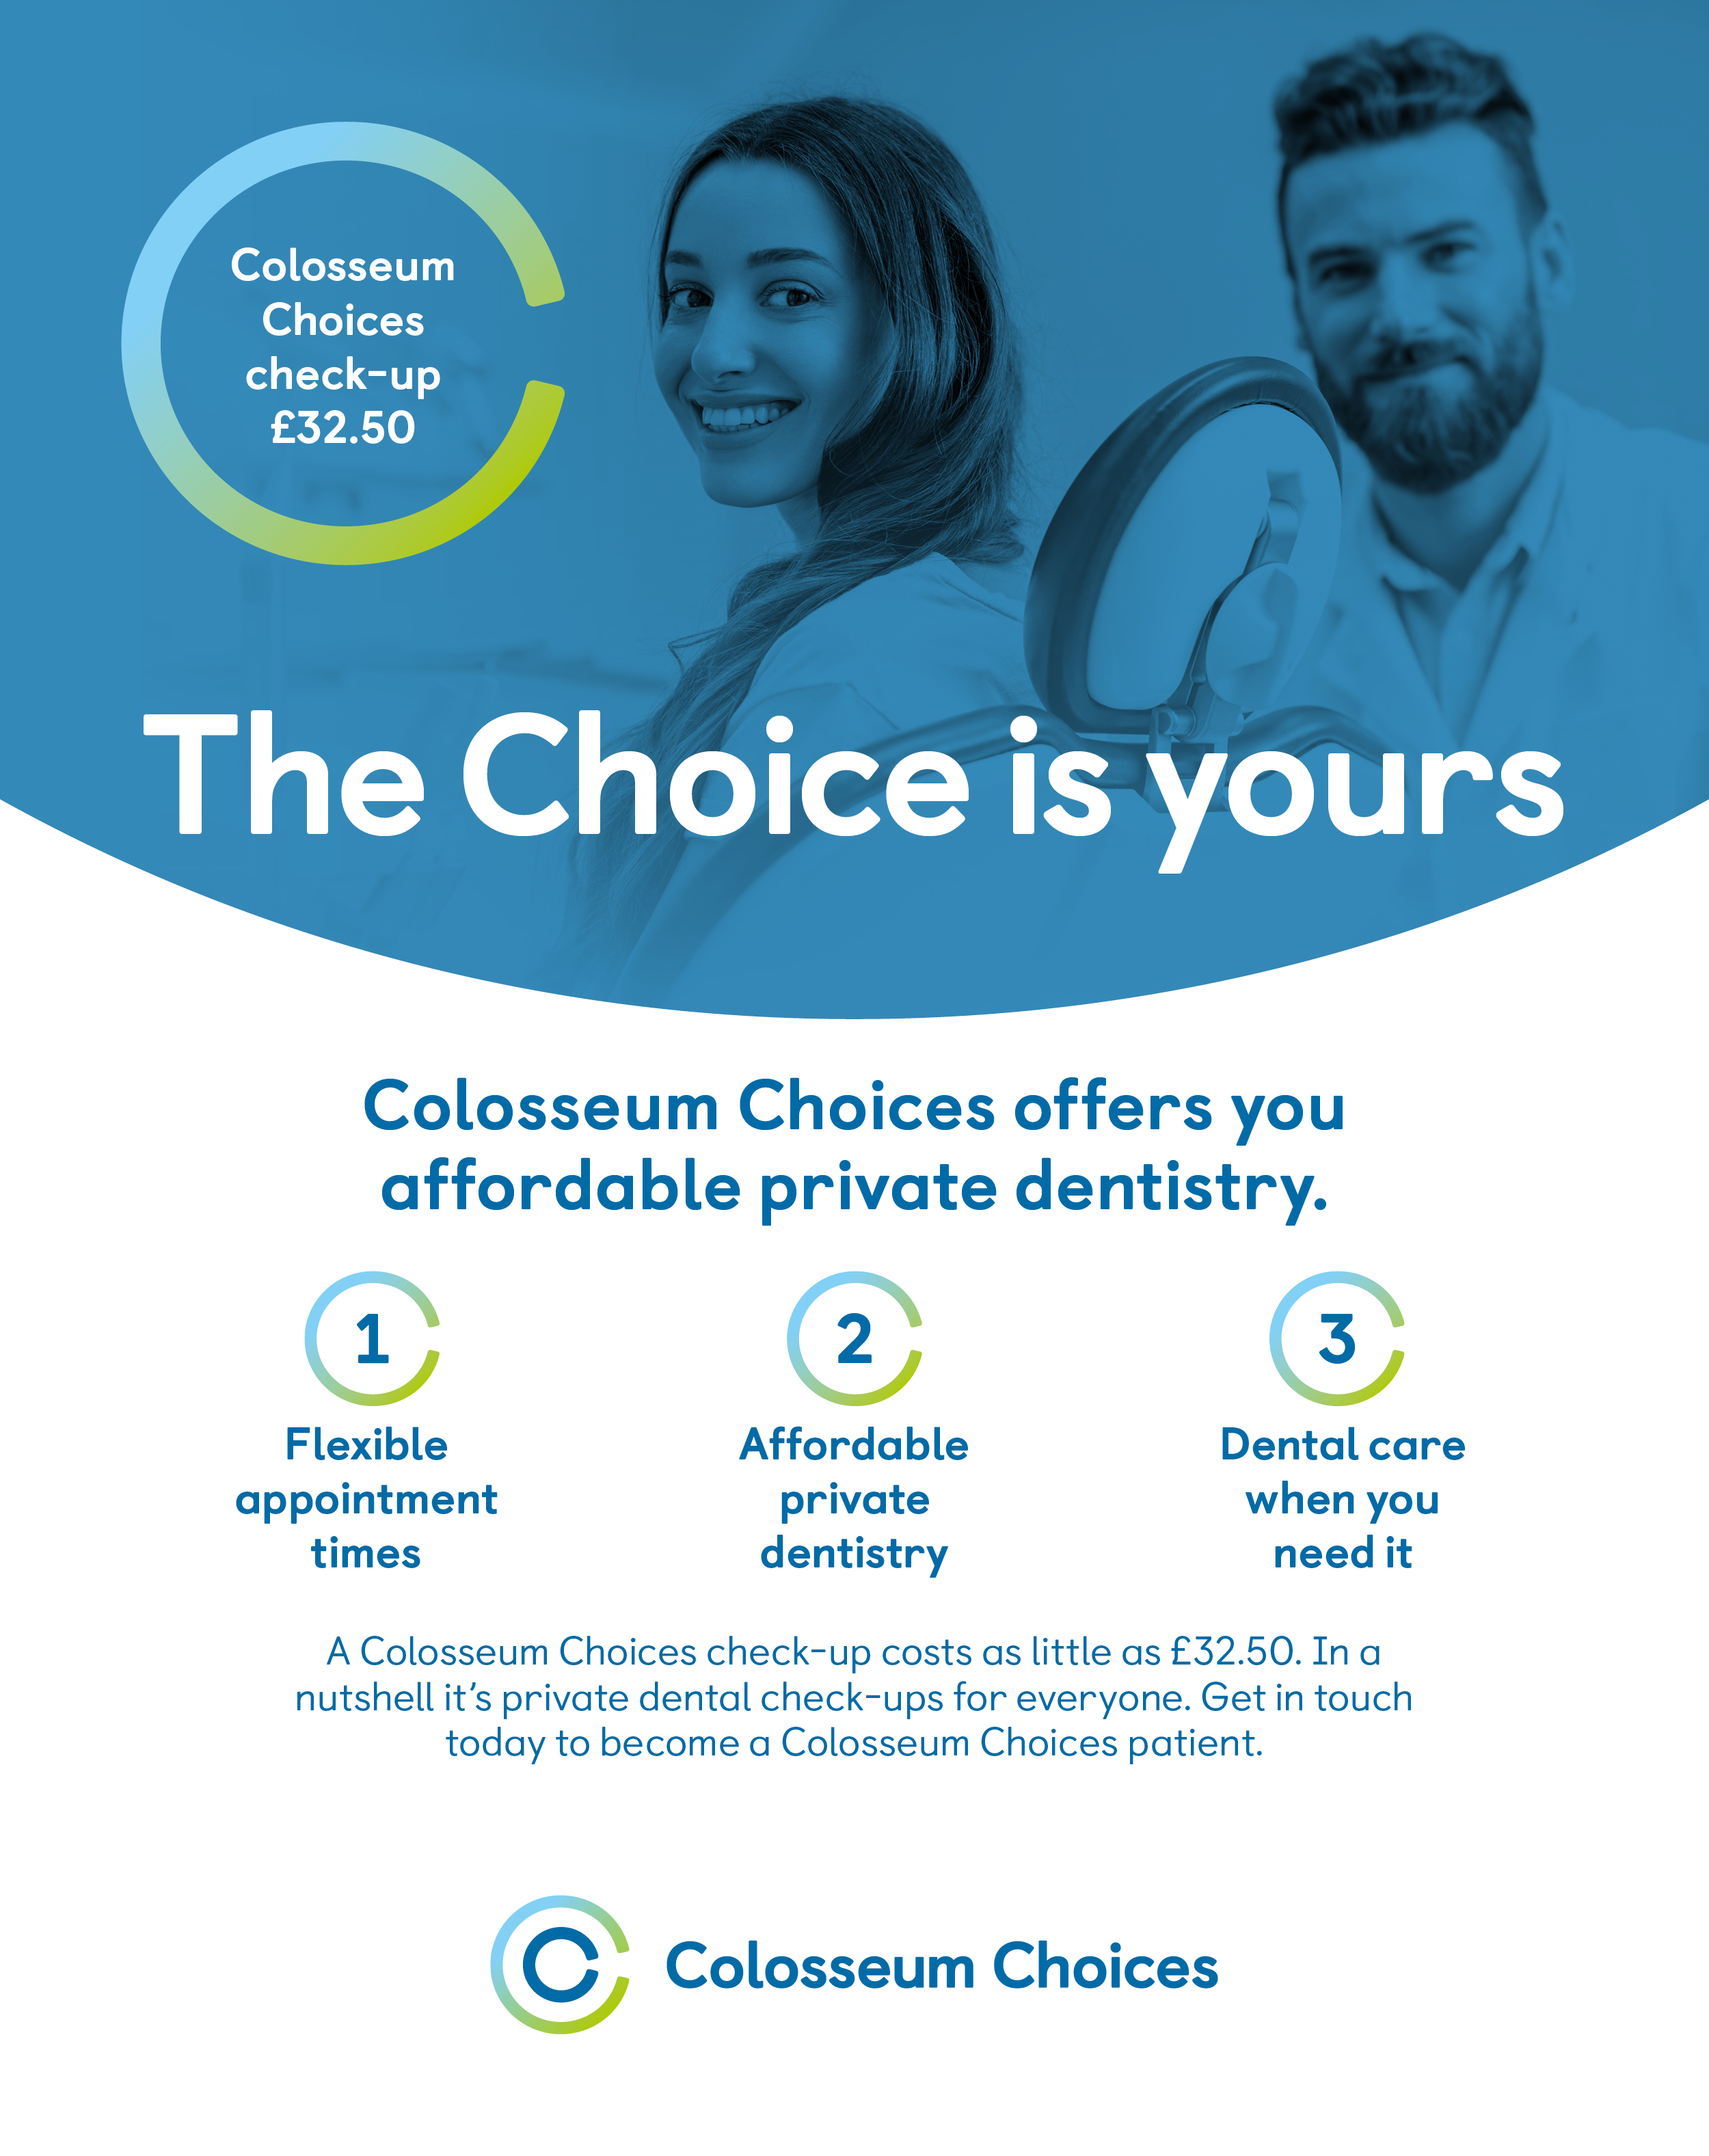 Colosseum-Dental_Choices_Choices-Circle_Price-List-Graphic_600px_AW_v3.jpg